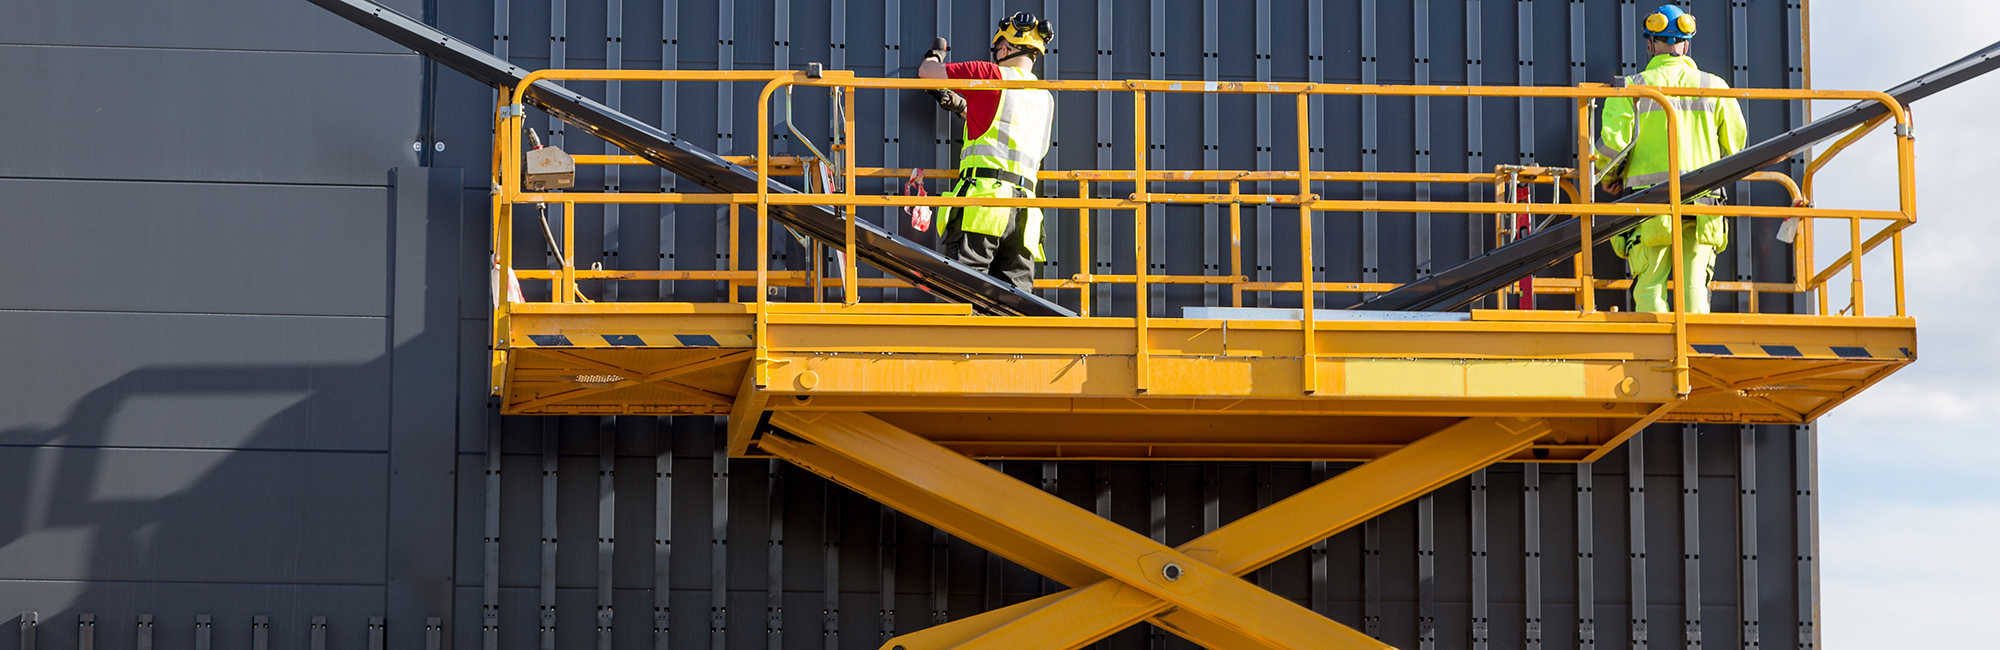 Men on access platform working on building